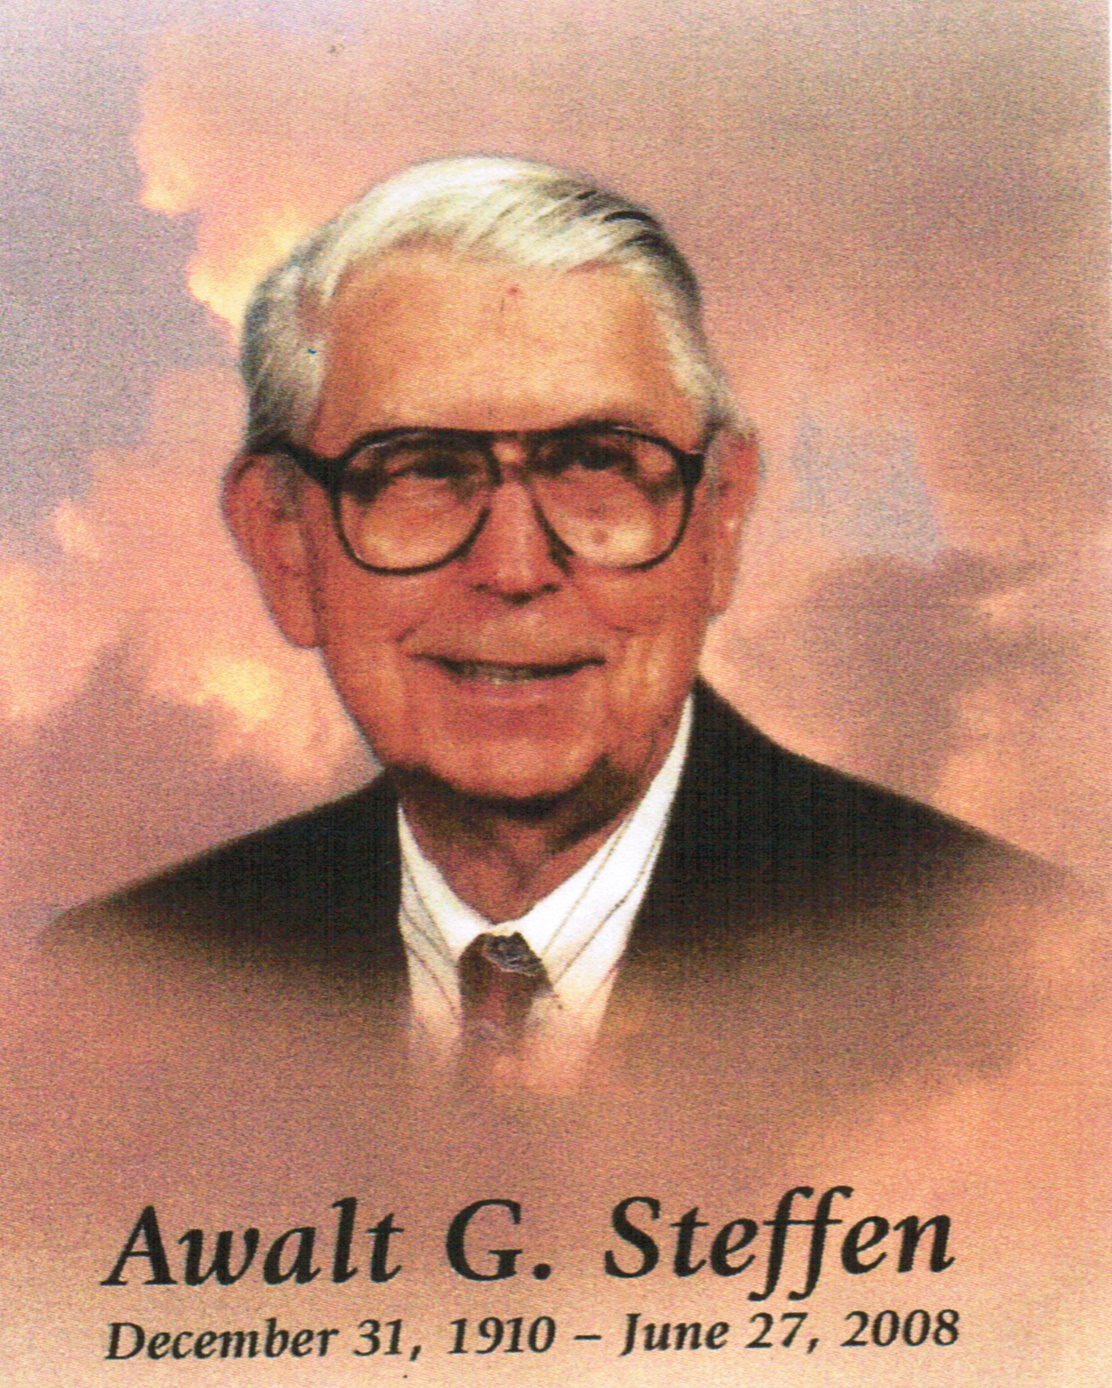 Awalt G Steffen Memorial ScholarshipProfile Picture